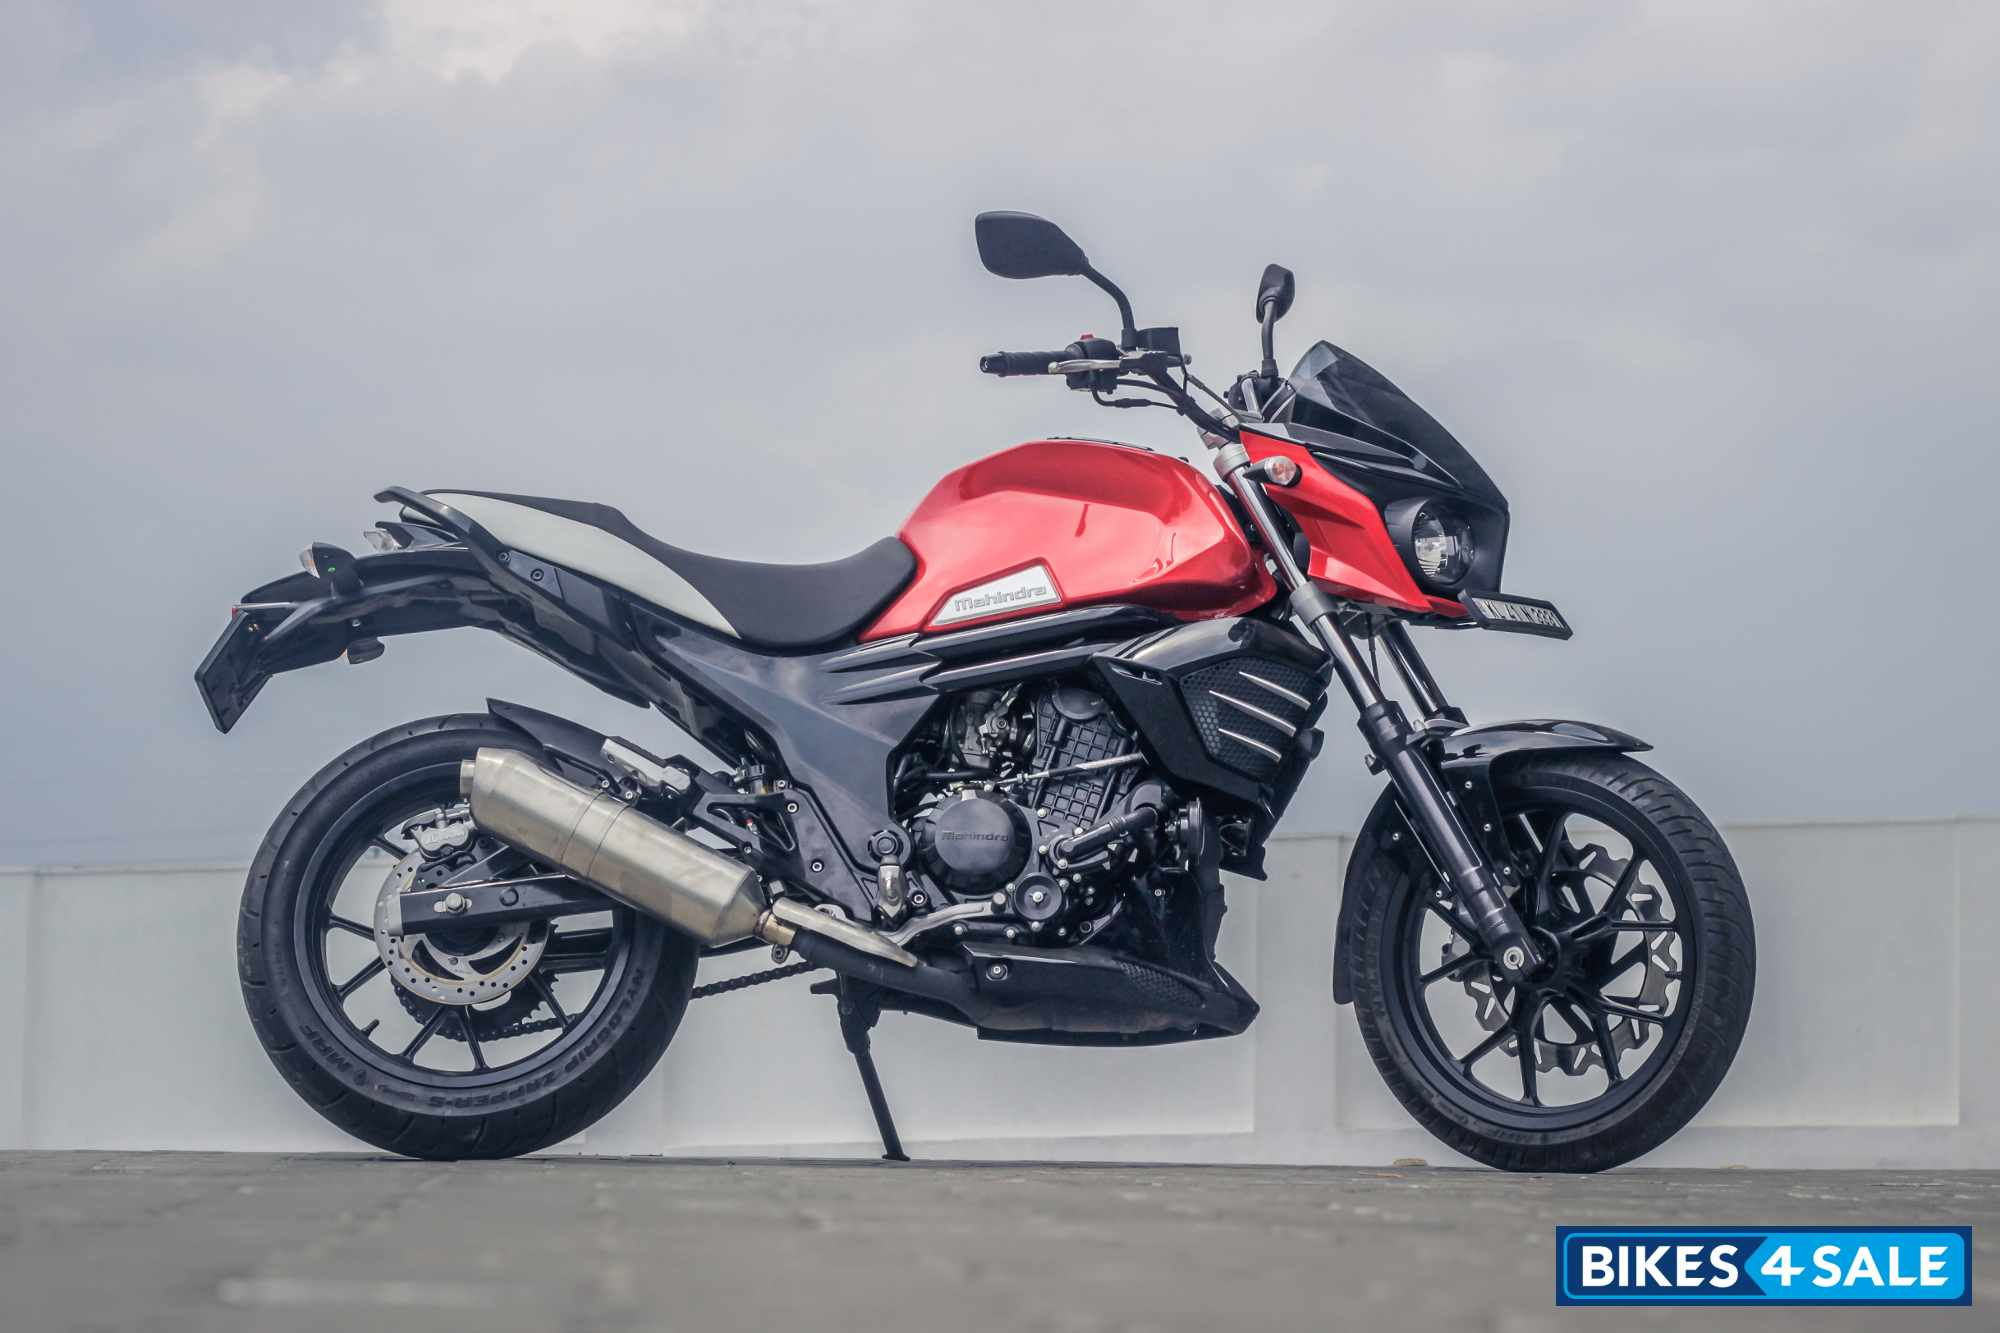 Foreign bikes for sale in bangalore dating 8